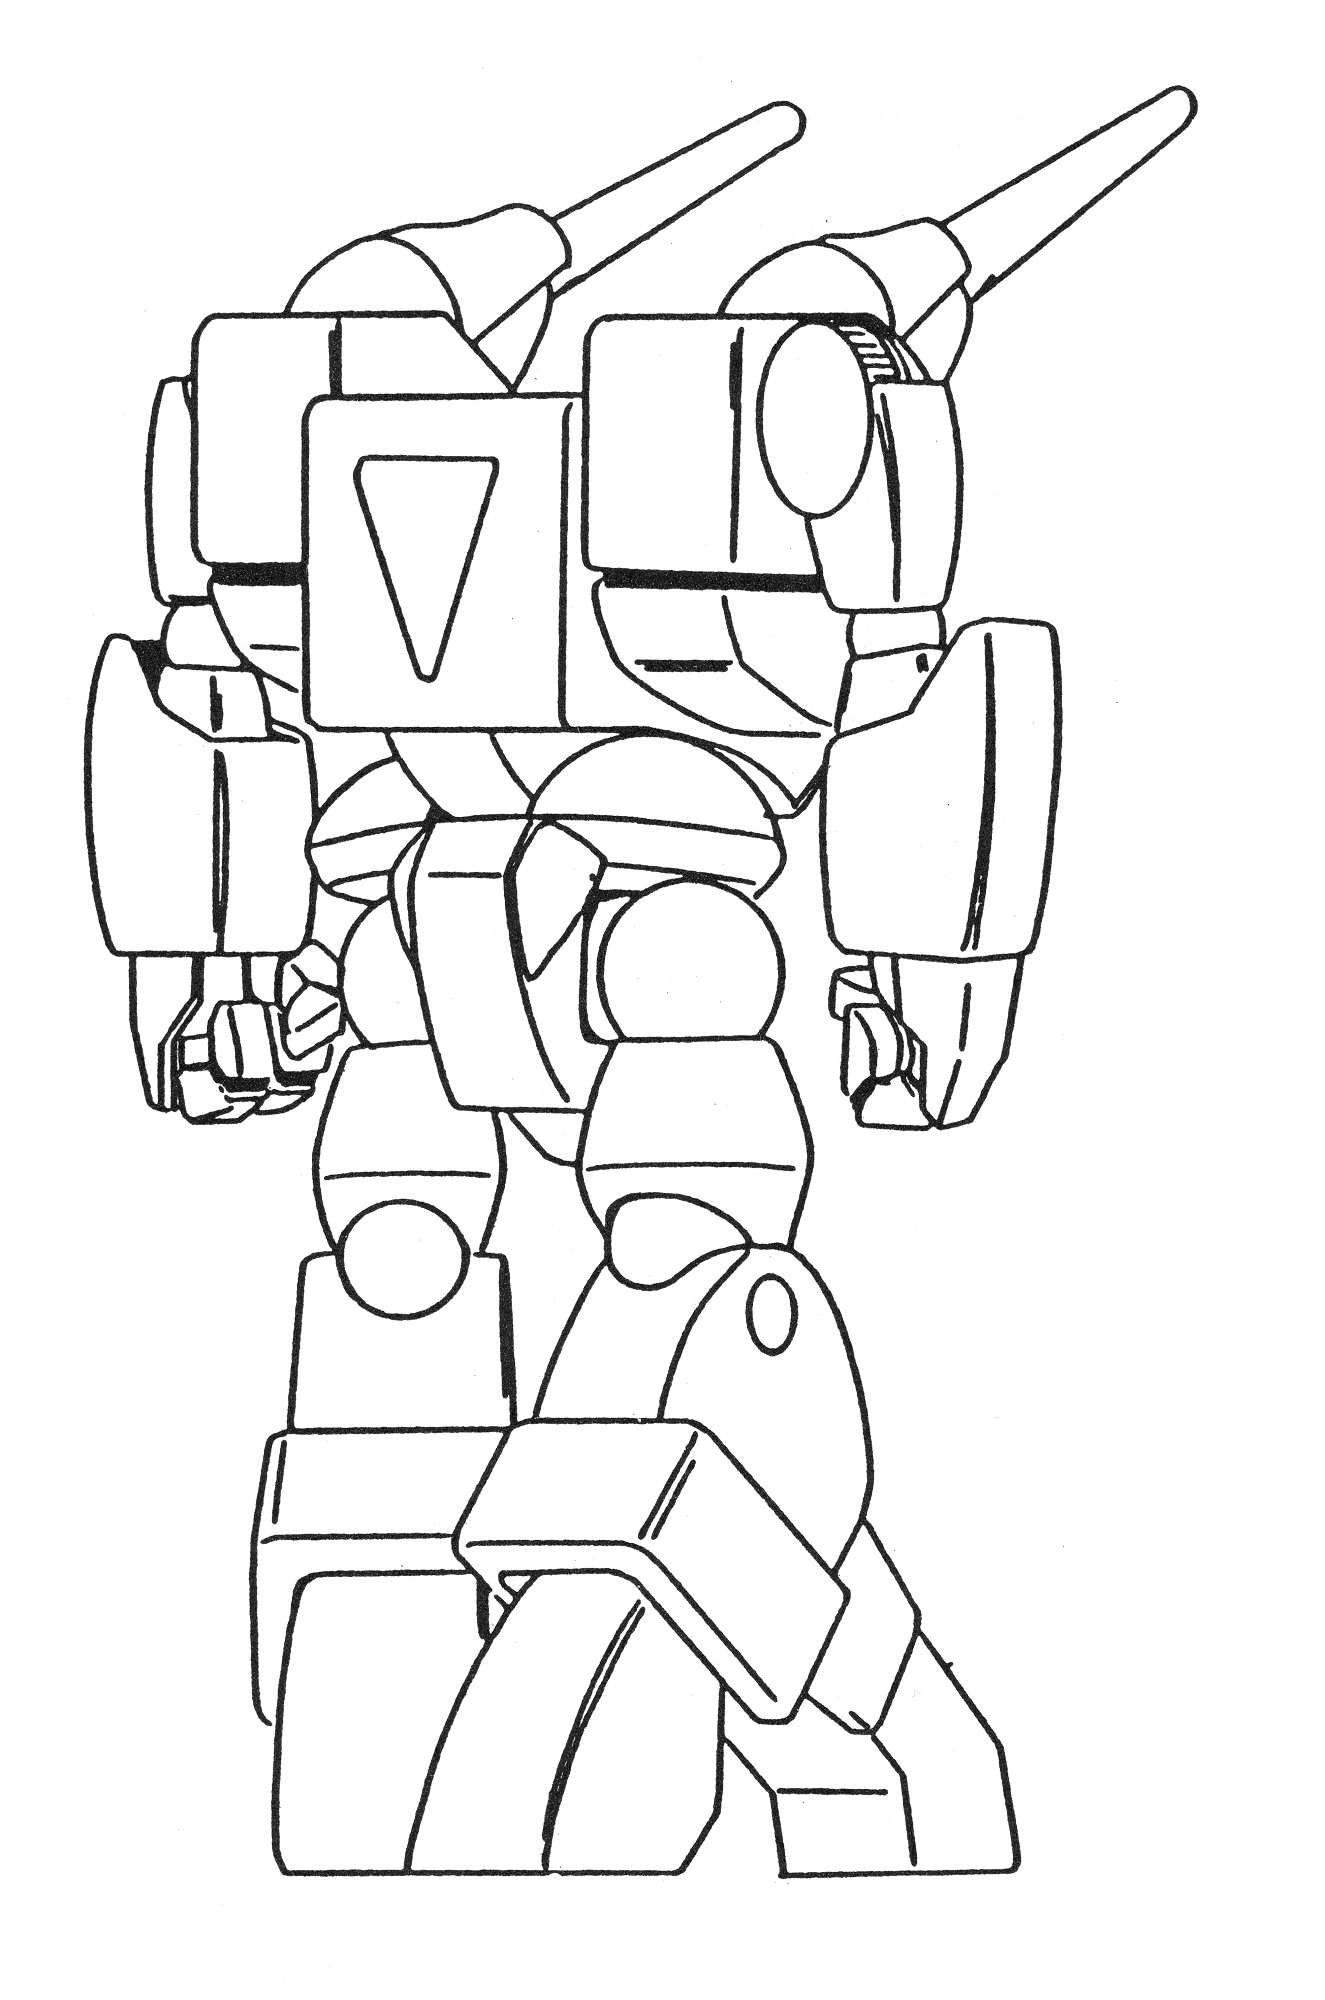 mbr-09-mk-ii-gladiator-main-battle-robot-3